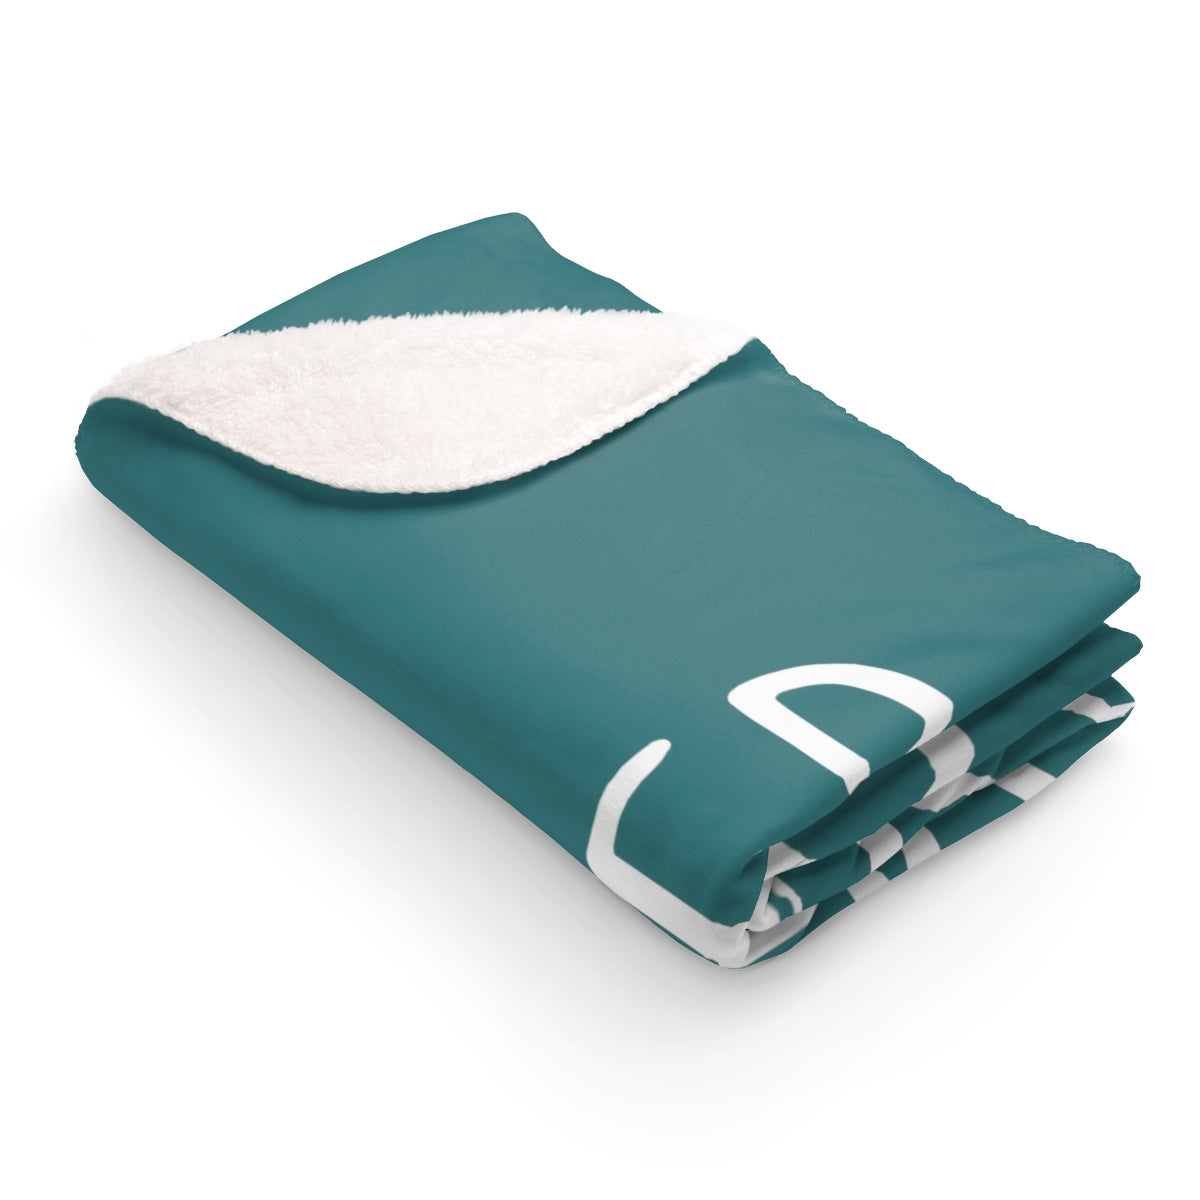 Grover Sherpa Fleece Blanket: Teal